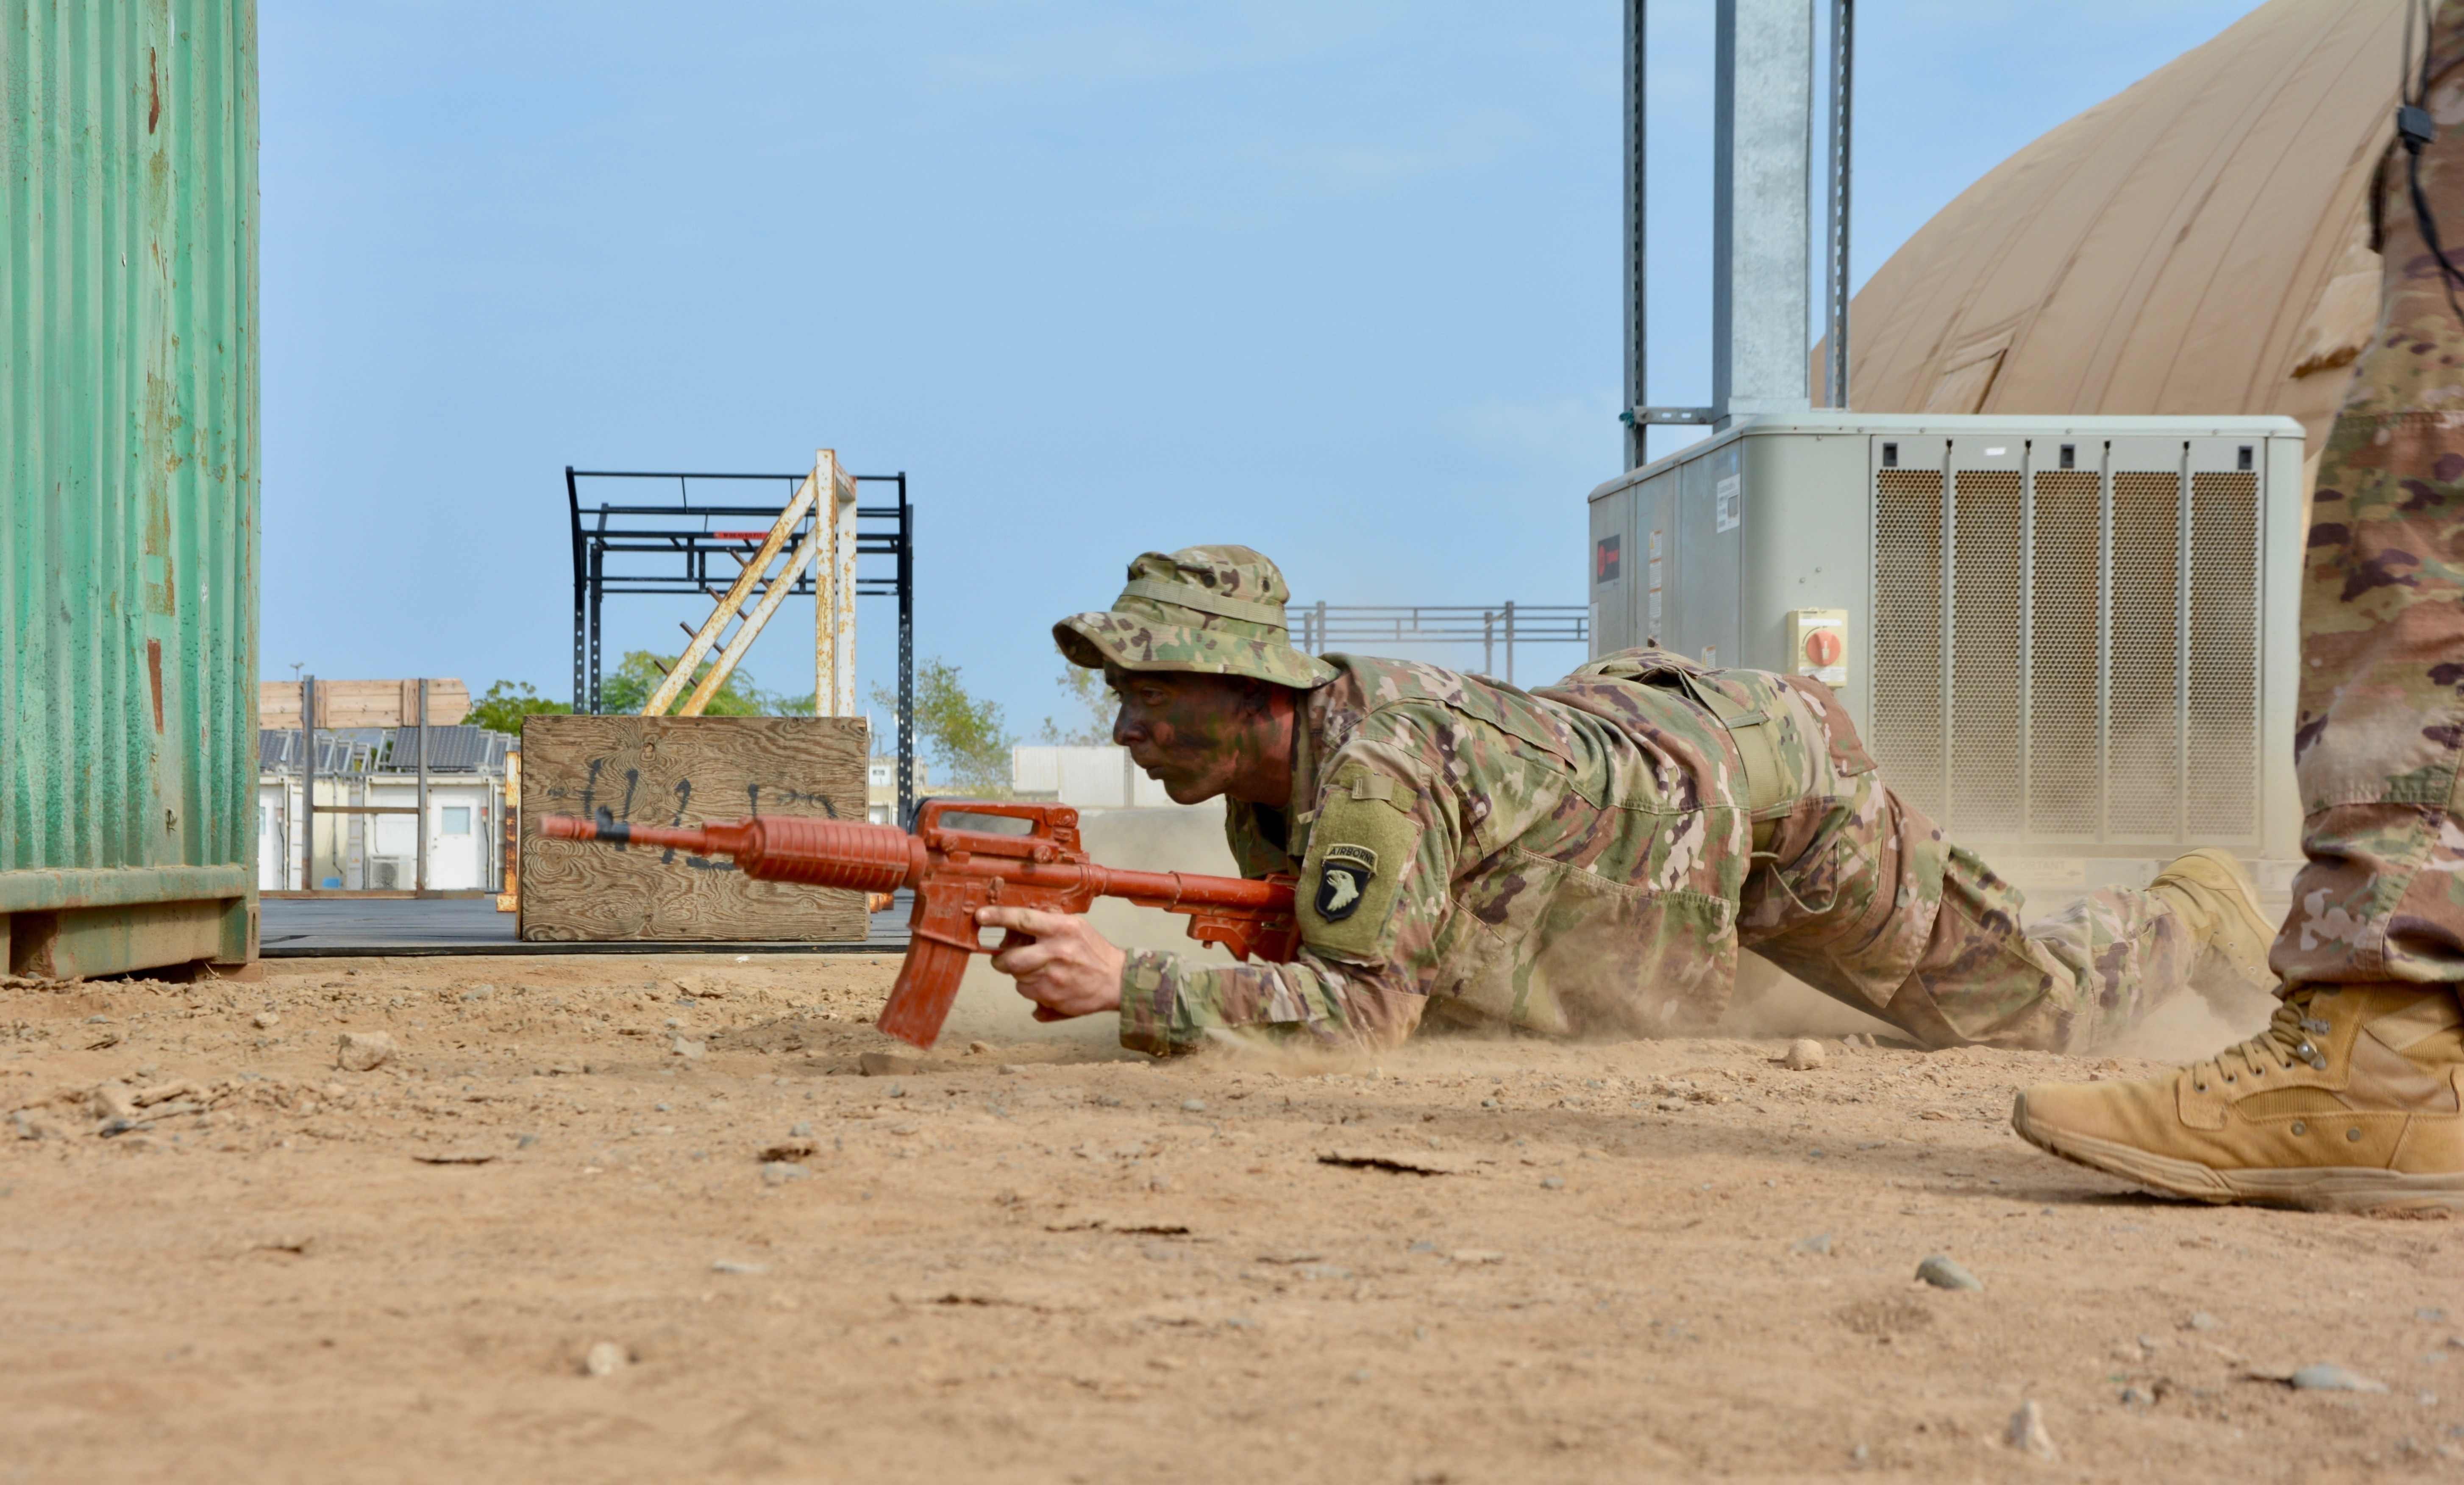 A U.S. Army Soldier, assigned to Bravo Company, 1st Battalion, 26th Infantry Regiment, 101st Airborne Division, high crawls to disable a bunker with a hand grenade during training for the Expert Infantryman Badge at Camp Lemonnier, Djibouti, Dec. 18, 2018. Members of the Fort Campbell, Kentucky unit demonstrated a mastery of critical skills that reinforce their ability to respond to emergency situations at U.S. Embassies in the East African region as members of the Combined Joint Task Force-Horn of Africa (CJTF-HOA), East Africa Response Force (EARF).